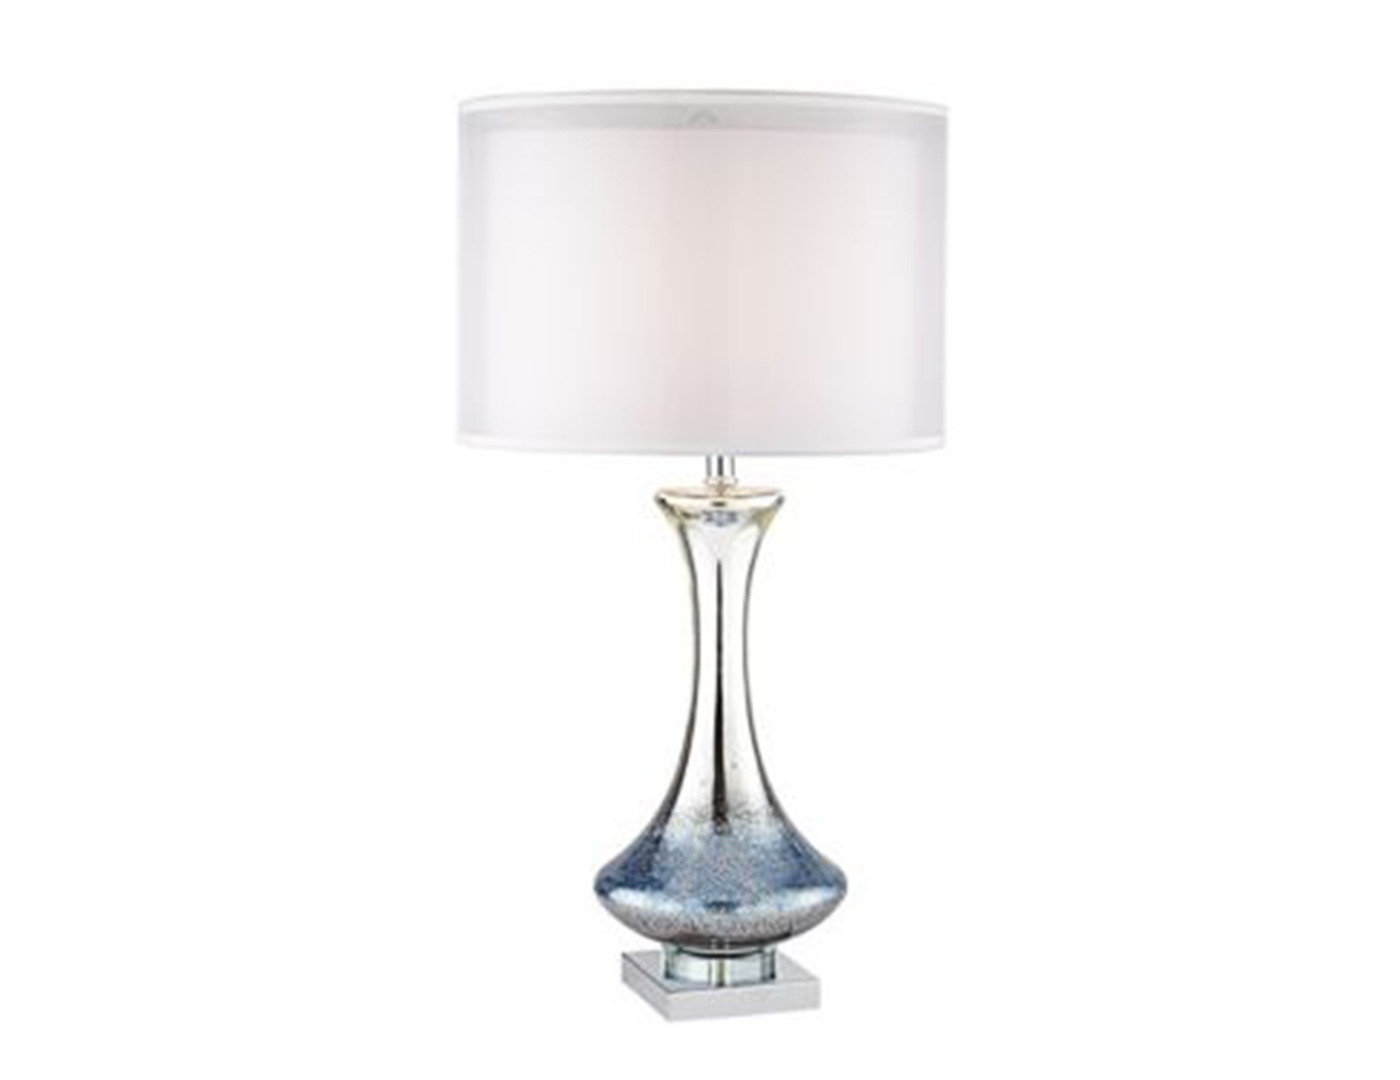 Blue glass table lamp luxury 56cm high blue bubble glass - Elegant table lamps for living room ...